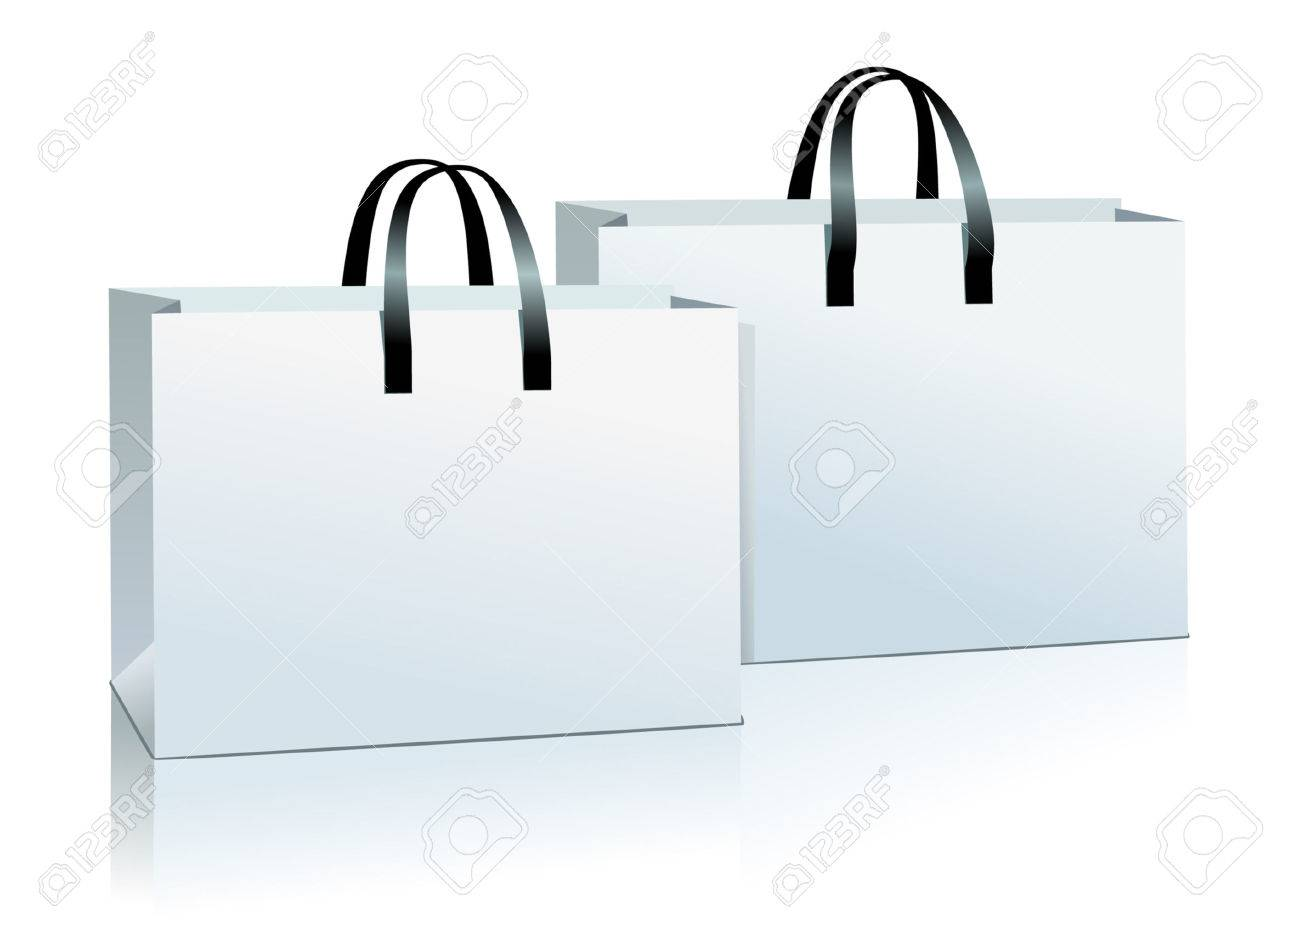 Two Shopping Bag Vector. Royalty Free Cliparts, Vectors, And Stock ...